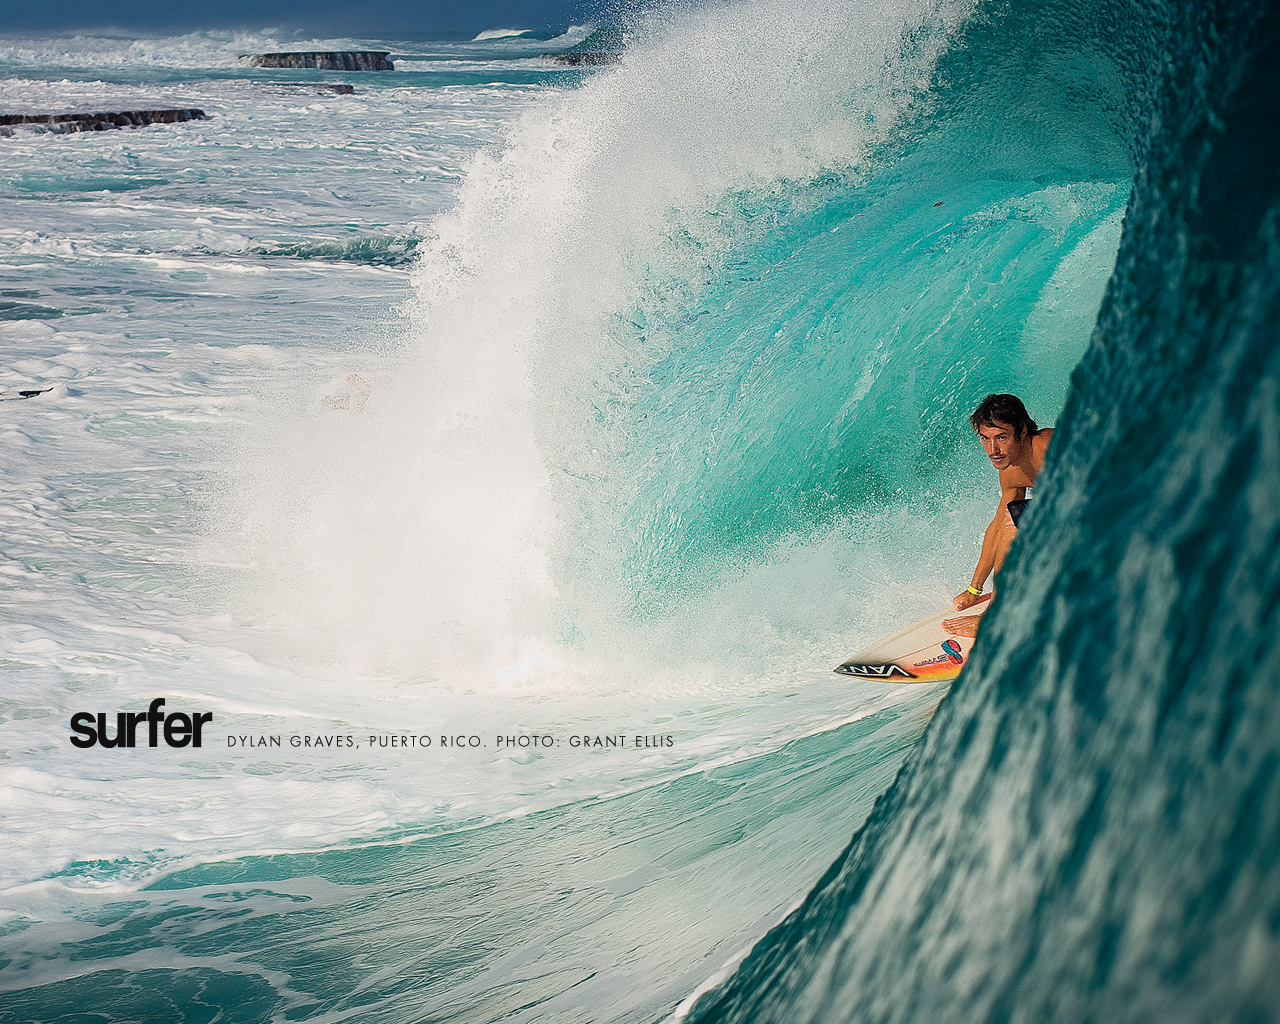 Surfermag Wallpapers HD Walls Find Wallpapers 1280x1024